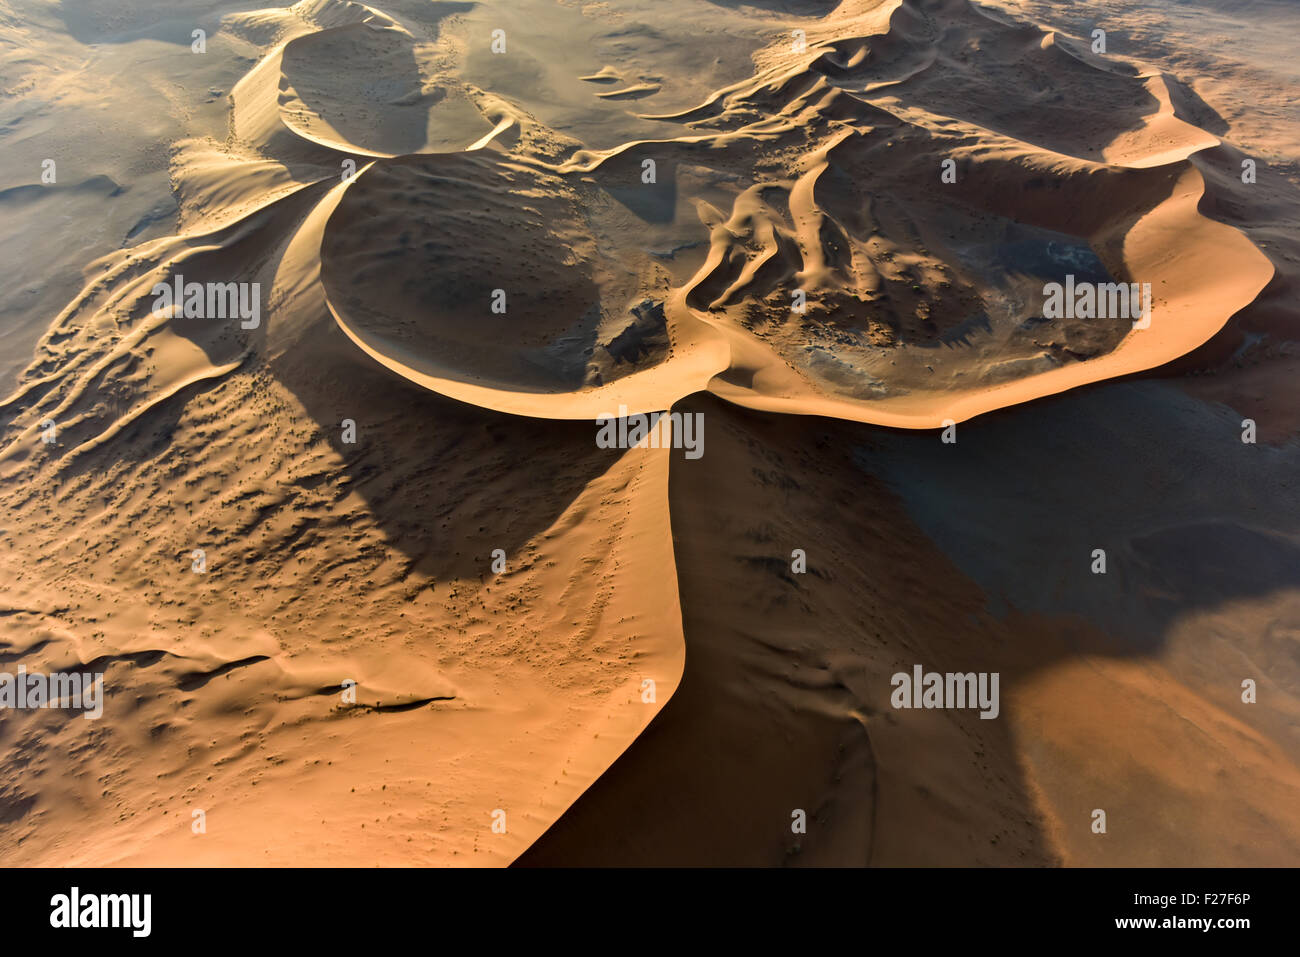 Aerial view of high red dunes, located in the Namib Desert, in the Namib-Naukluft National Park of Namibia. - Stock Image